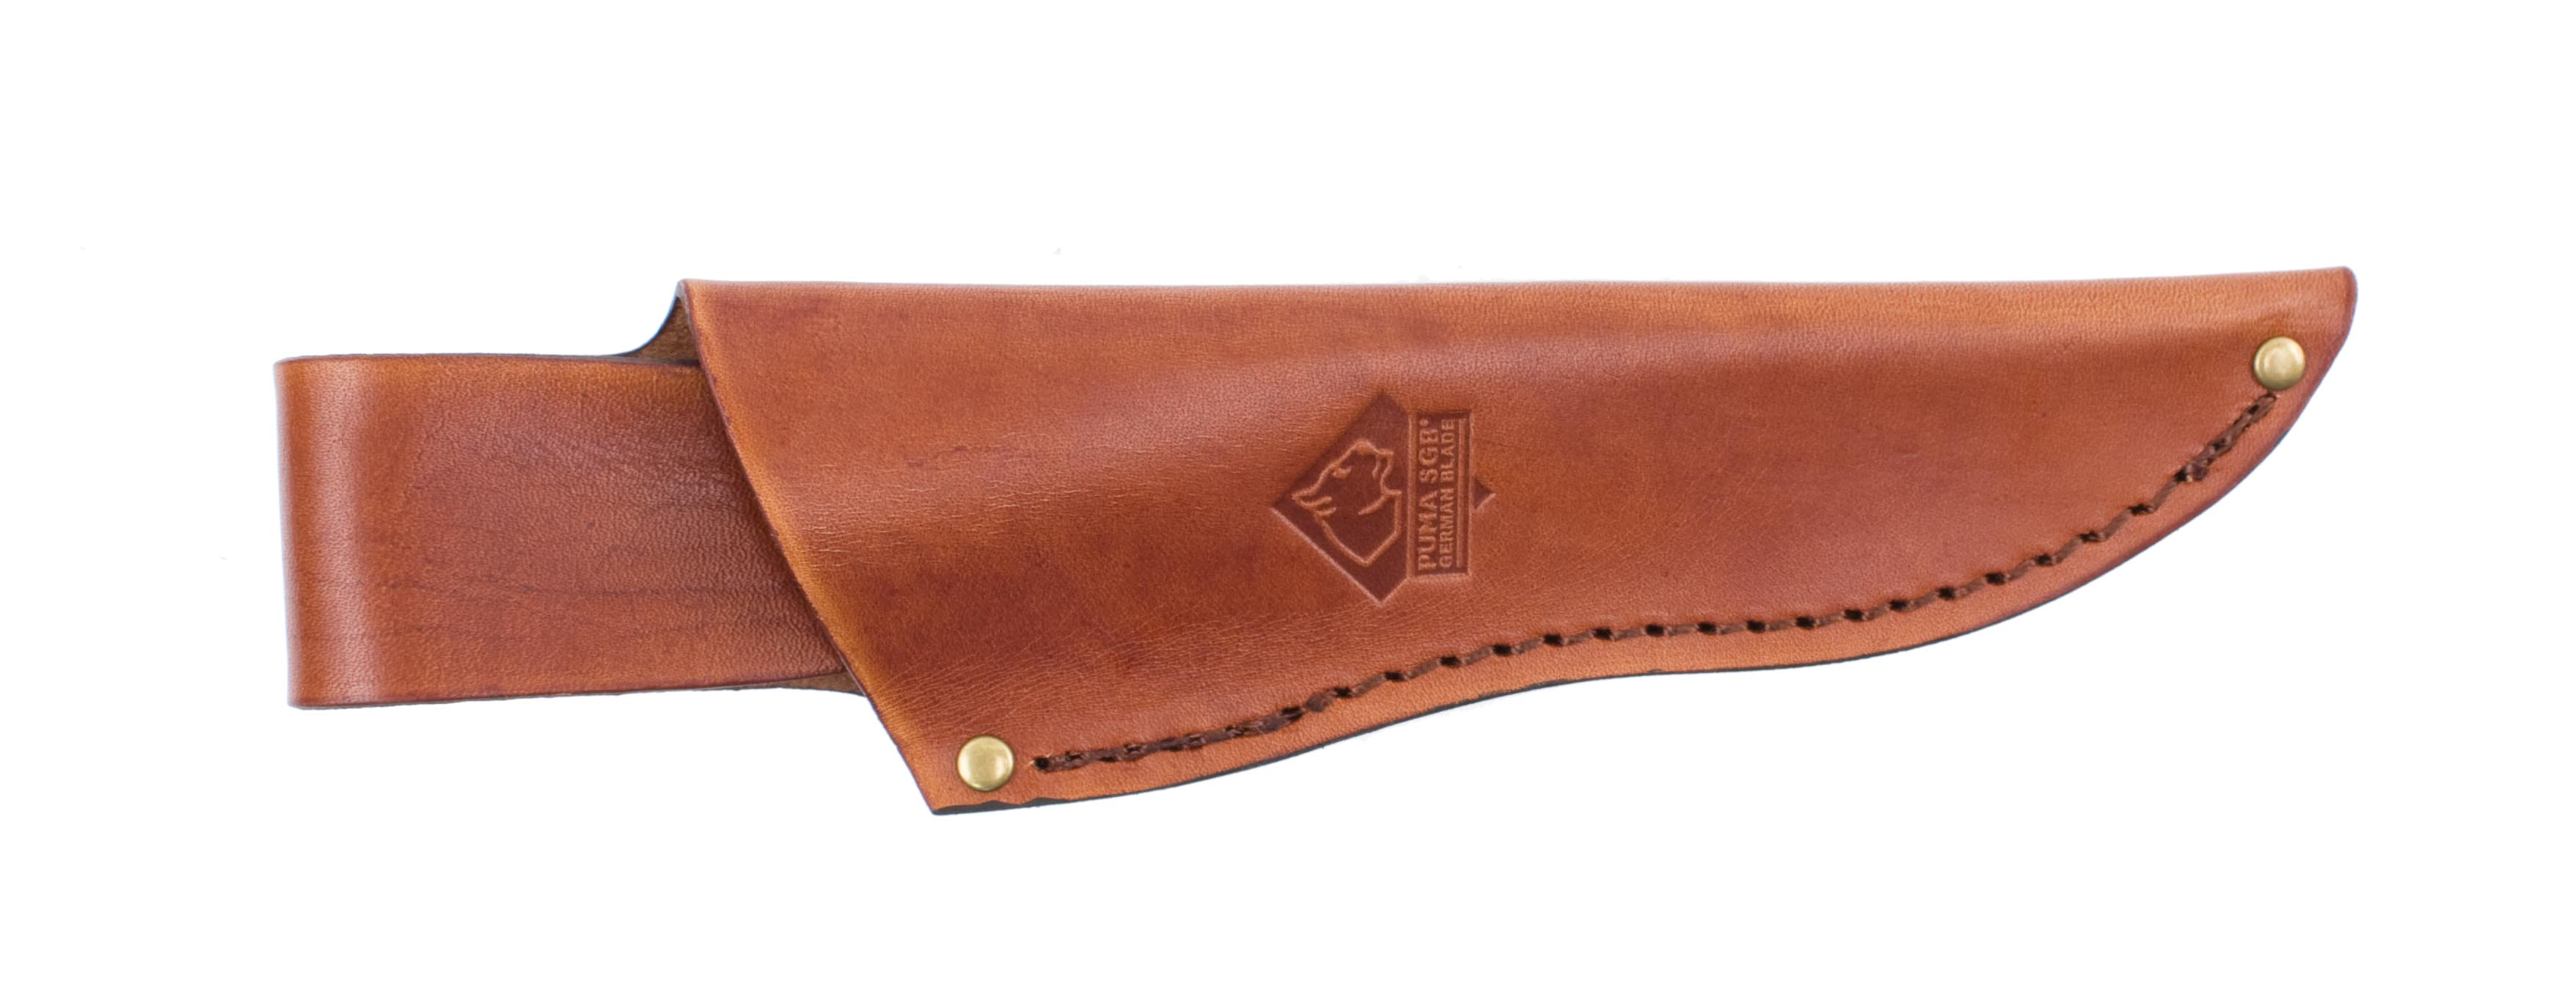 "Puma SGB Replacement 5.5"" Leather Sheath"